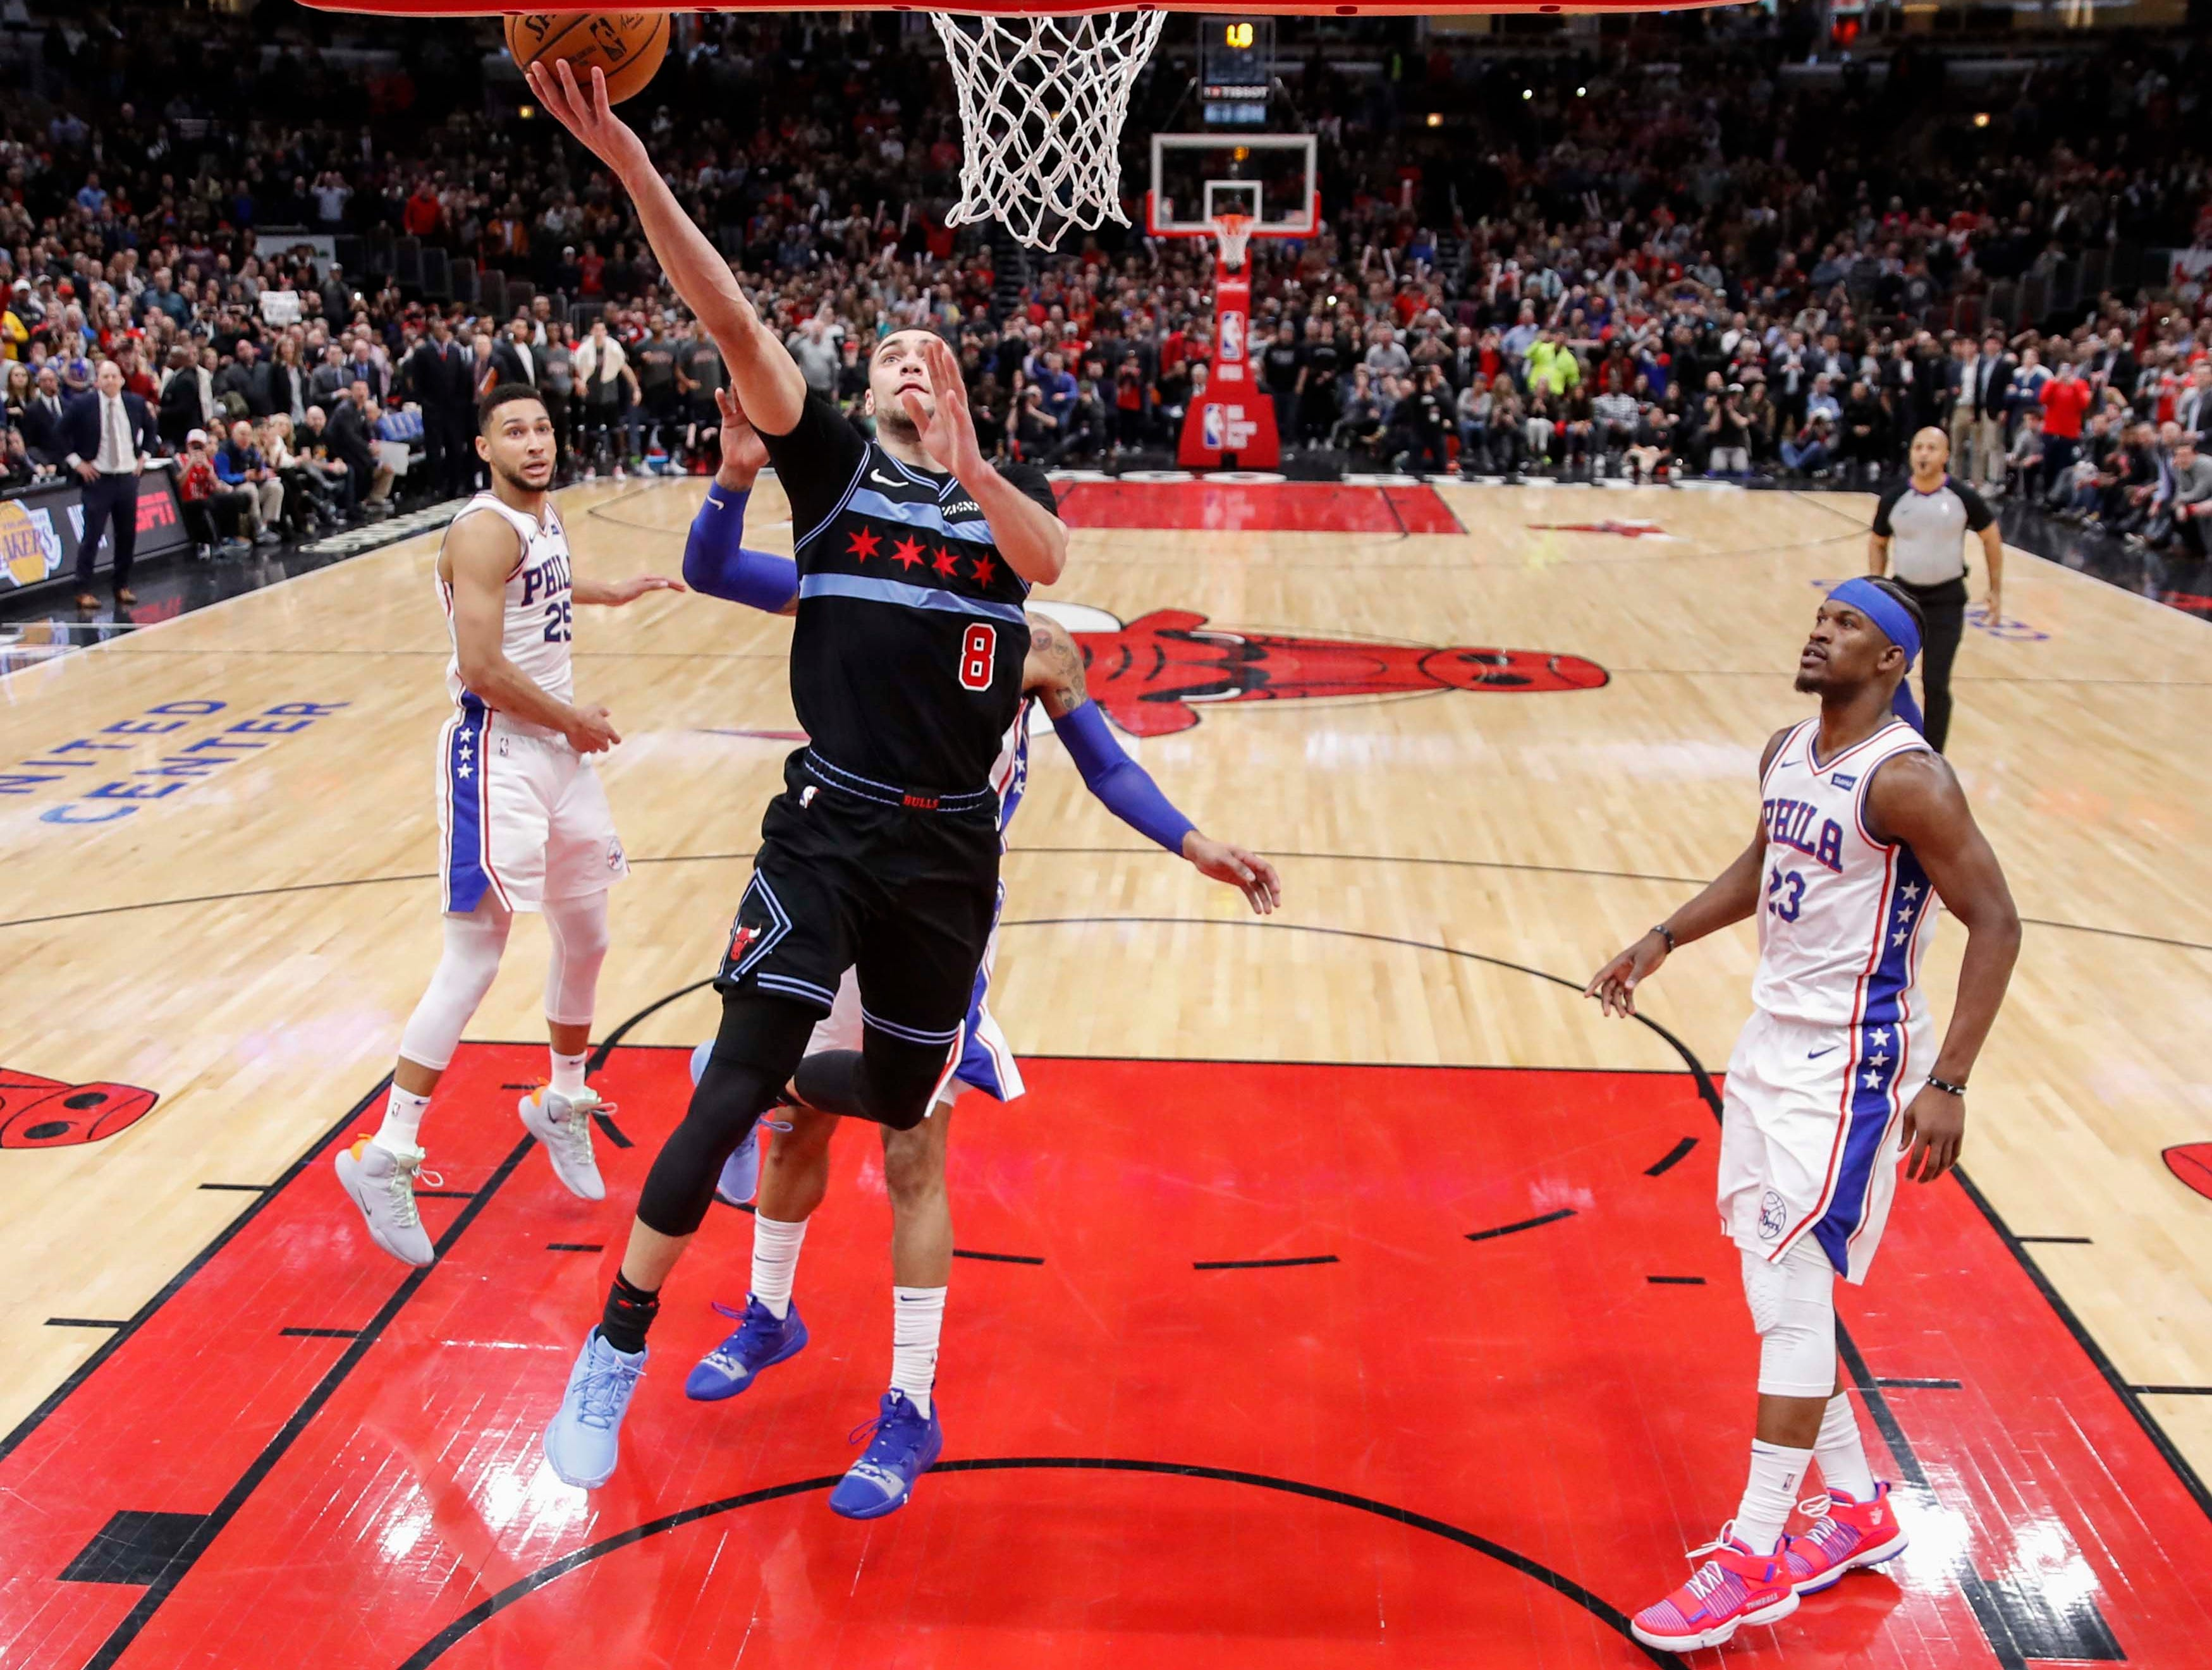 Bulls hang on to beat 76ers after bizarre ending sees final play run twice